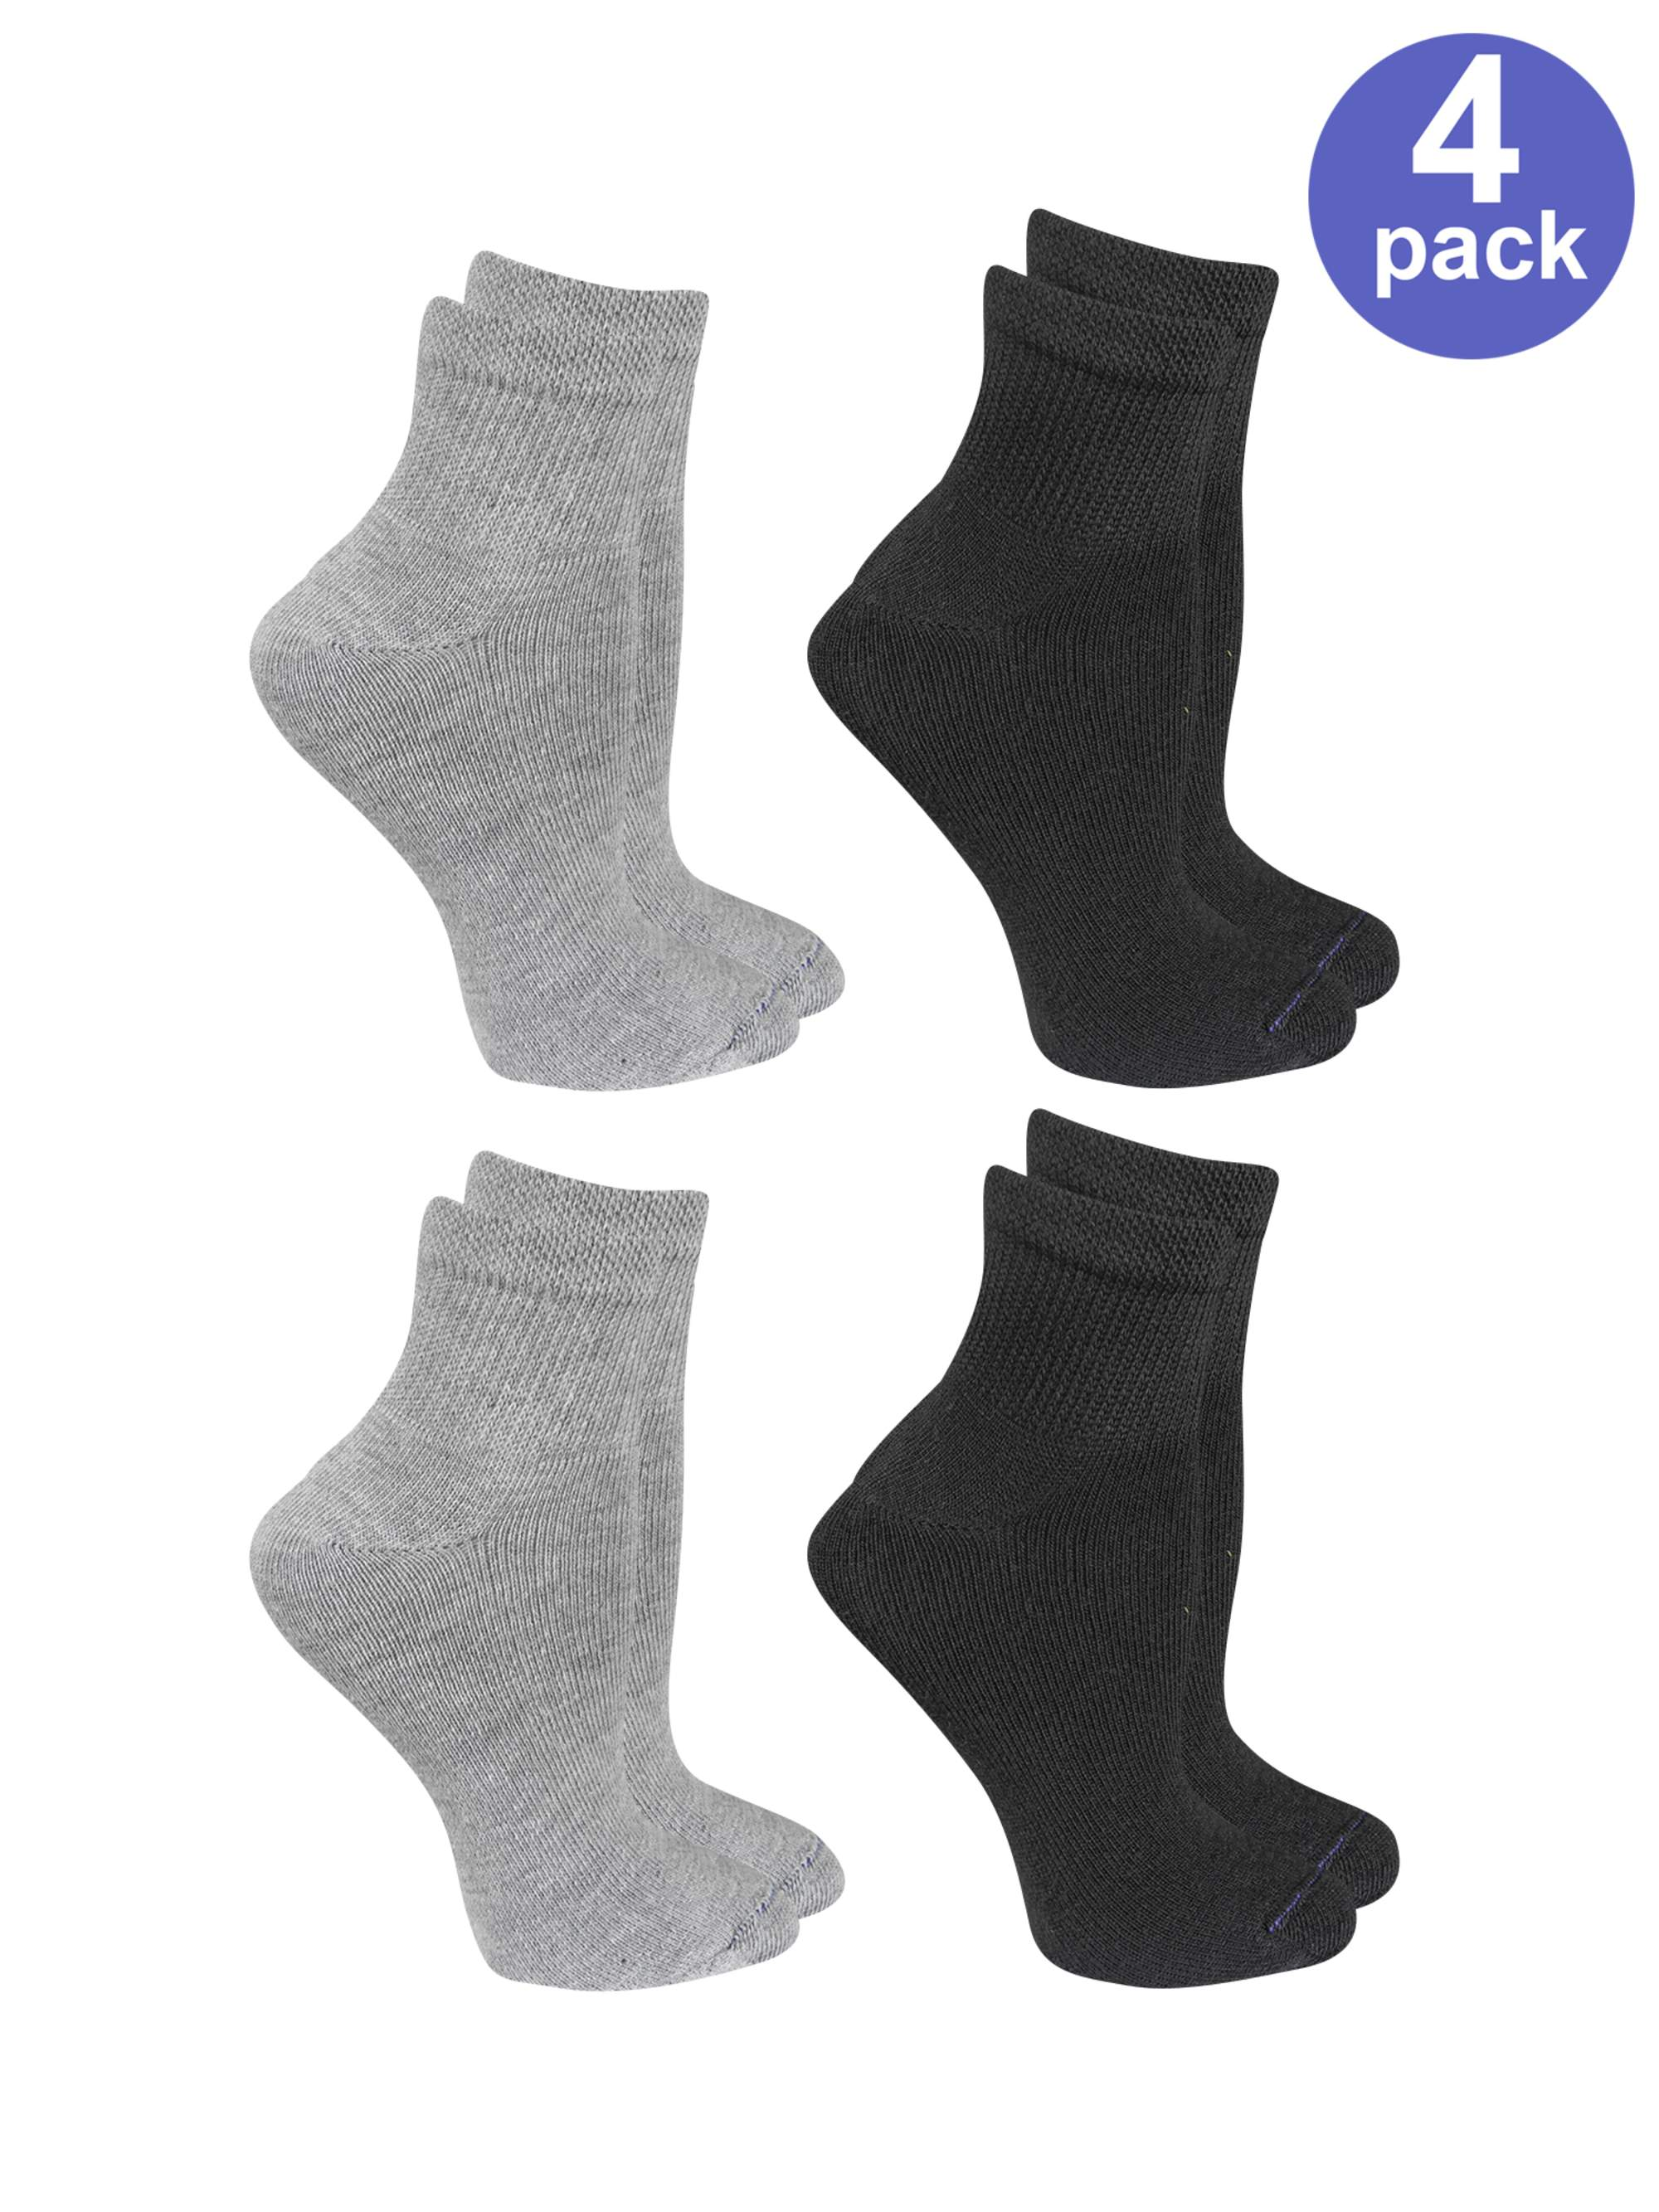 Women's Relaxed Fit Ankle Socks 4 Pair